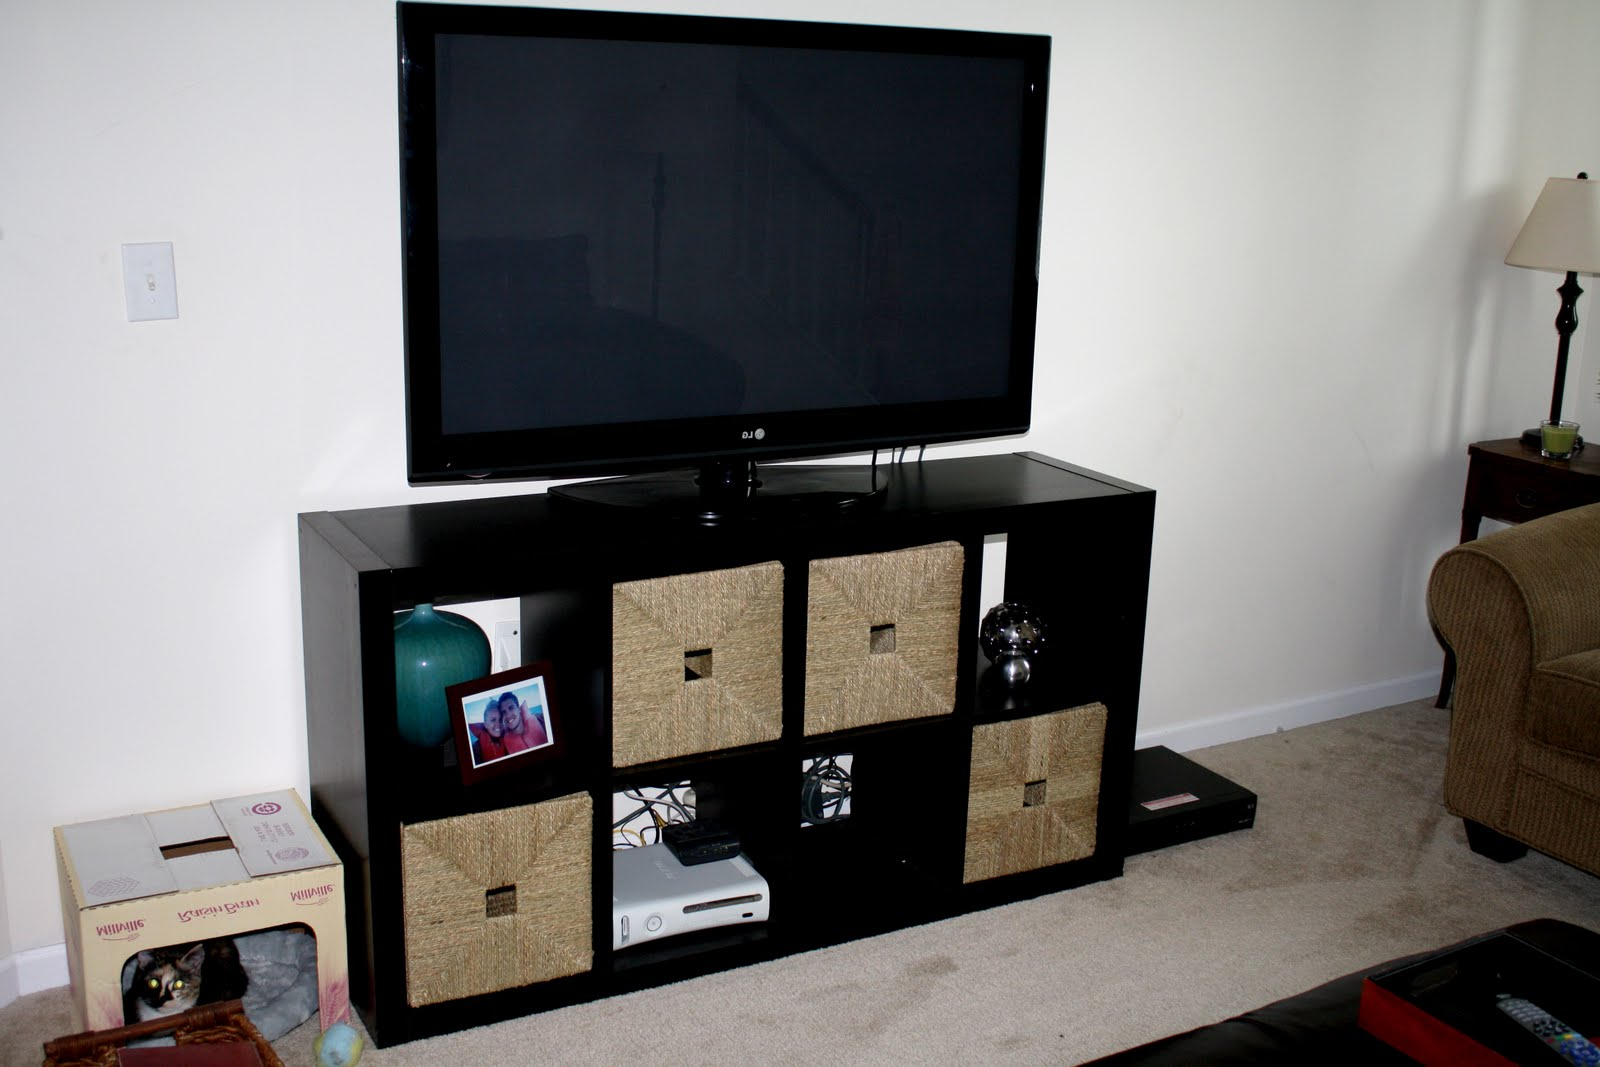 Tv Stand Bookshelf Combo Ikea – Buyouapp With Regard To Most Popular Tv Stands And Bookshelf (View 18 of 20)